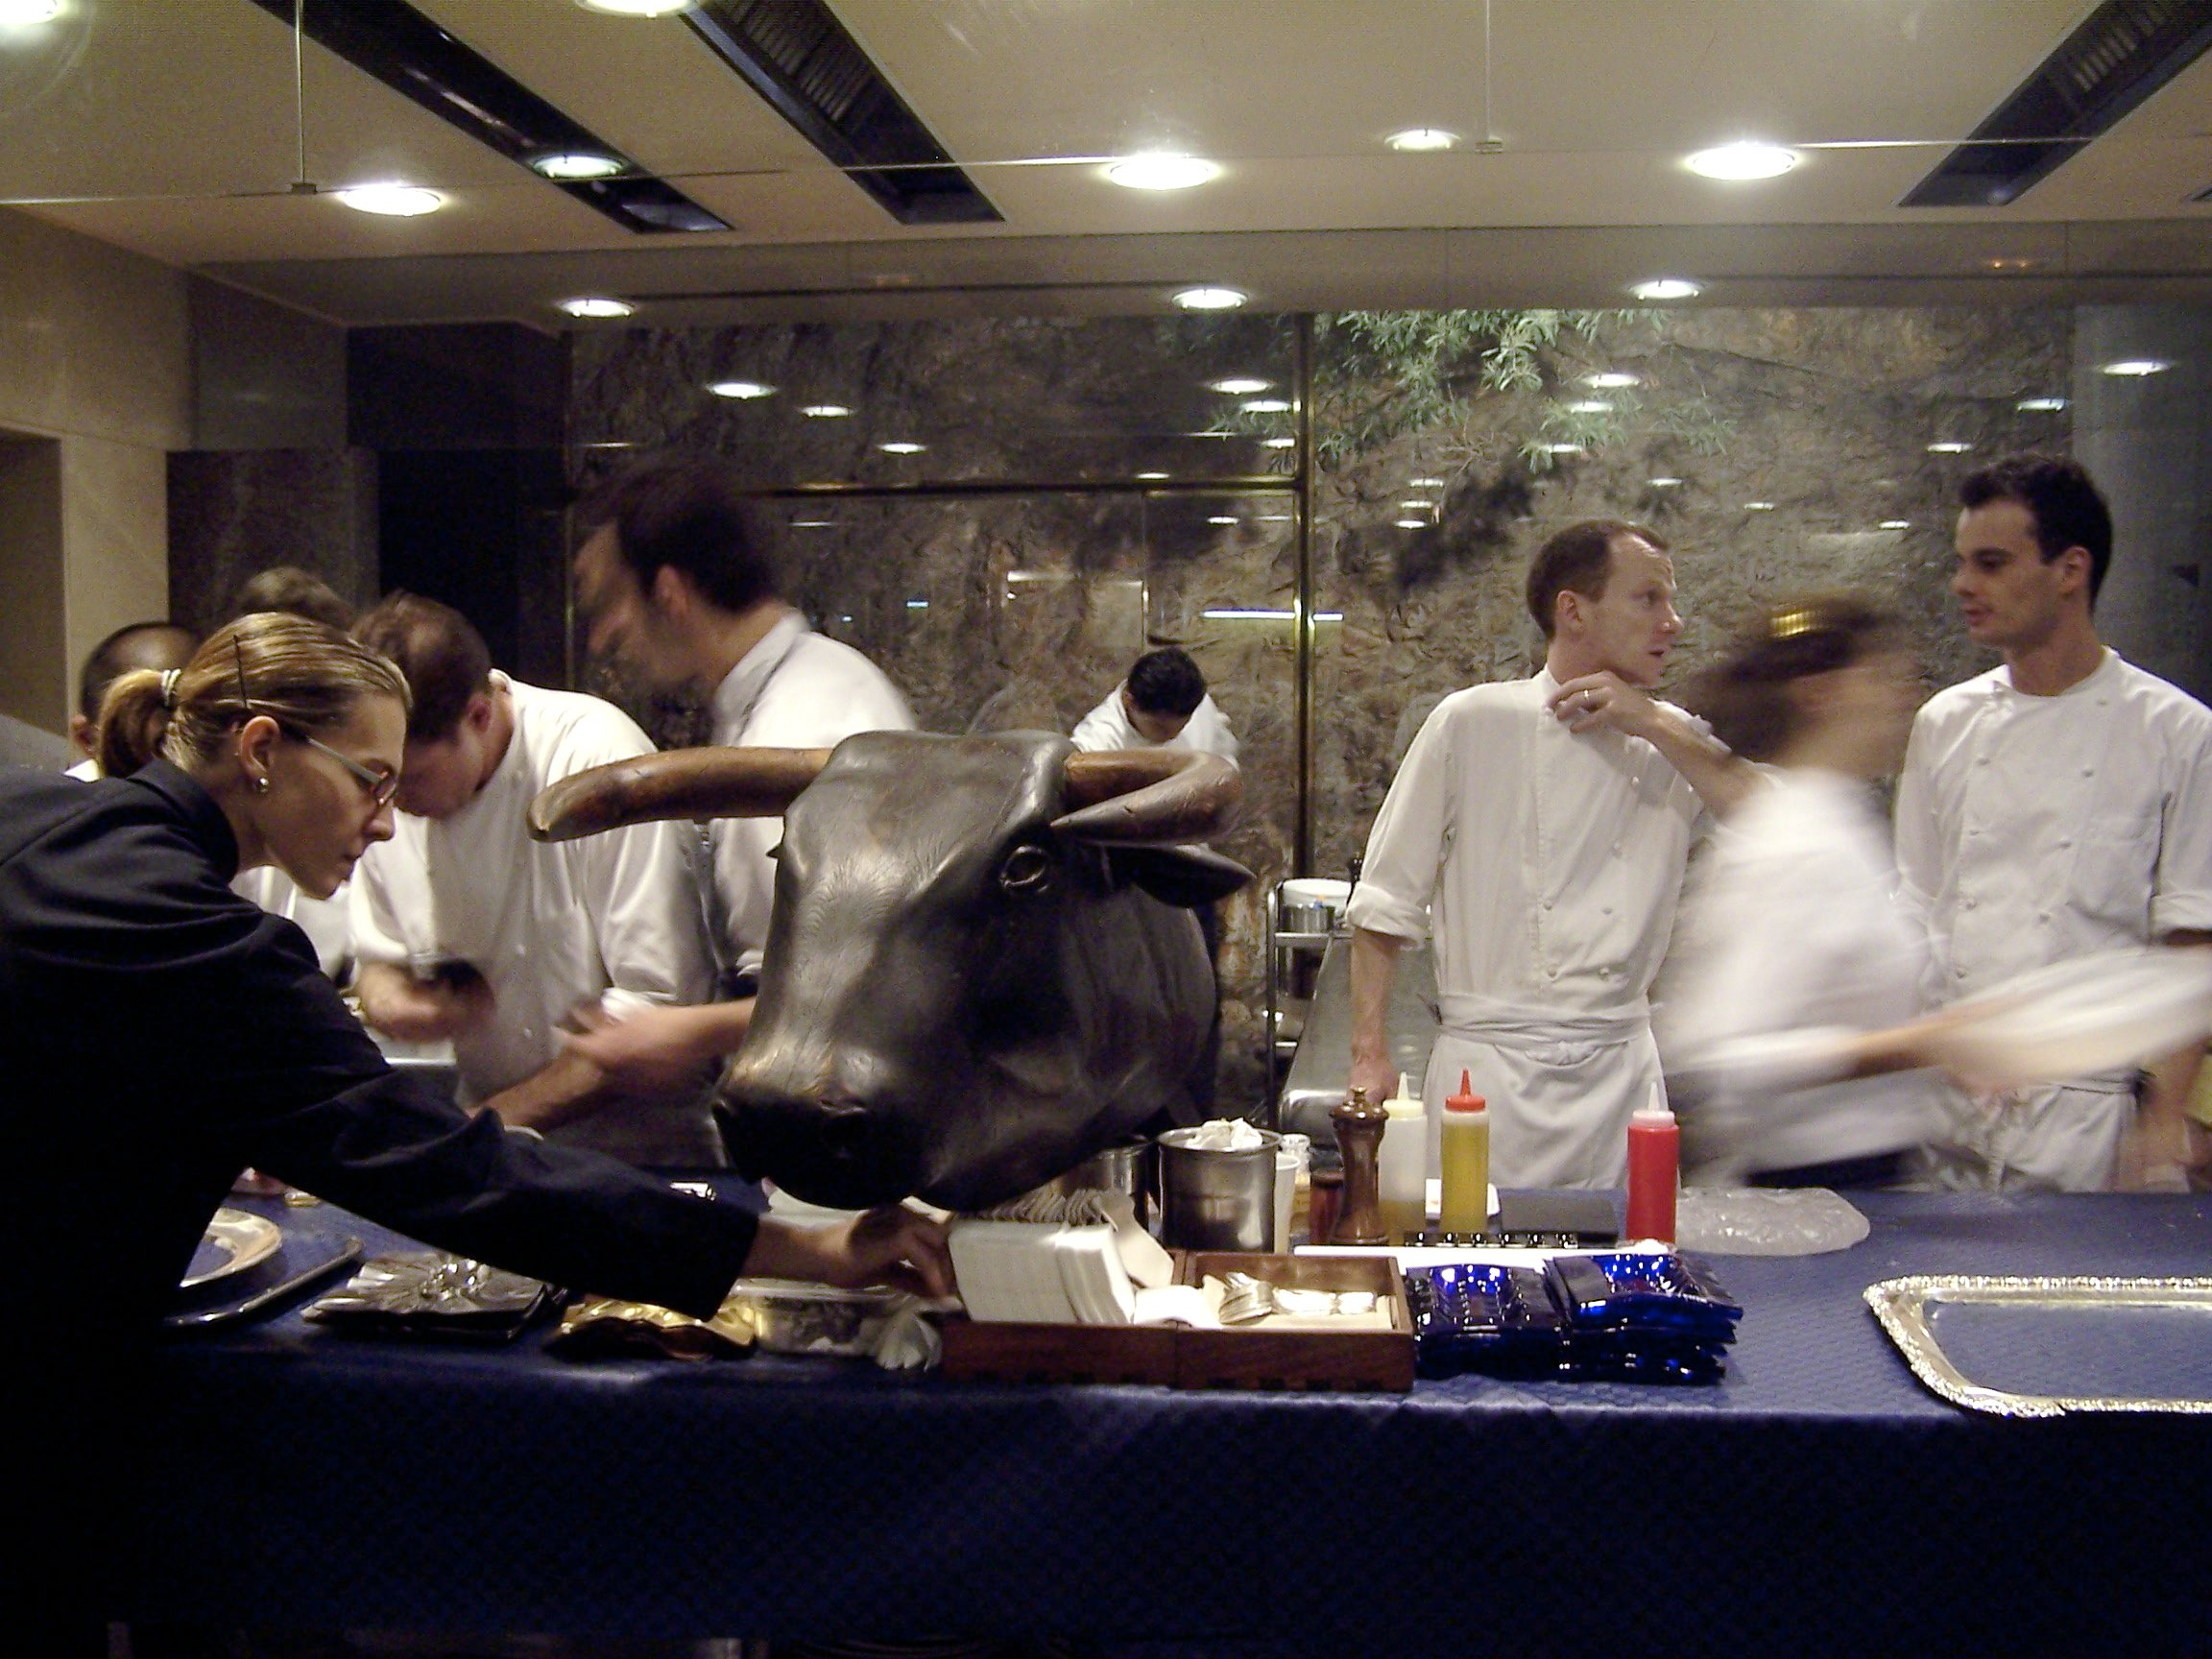 El Bulli kitchen